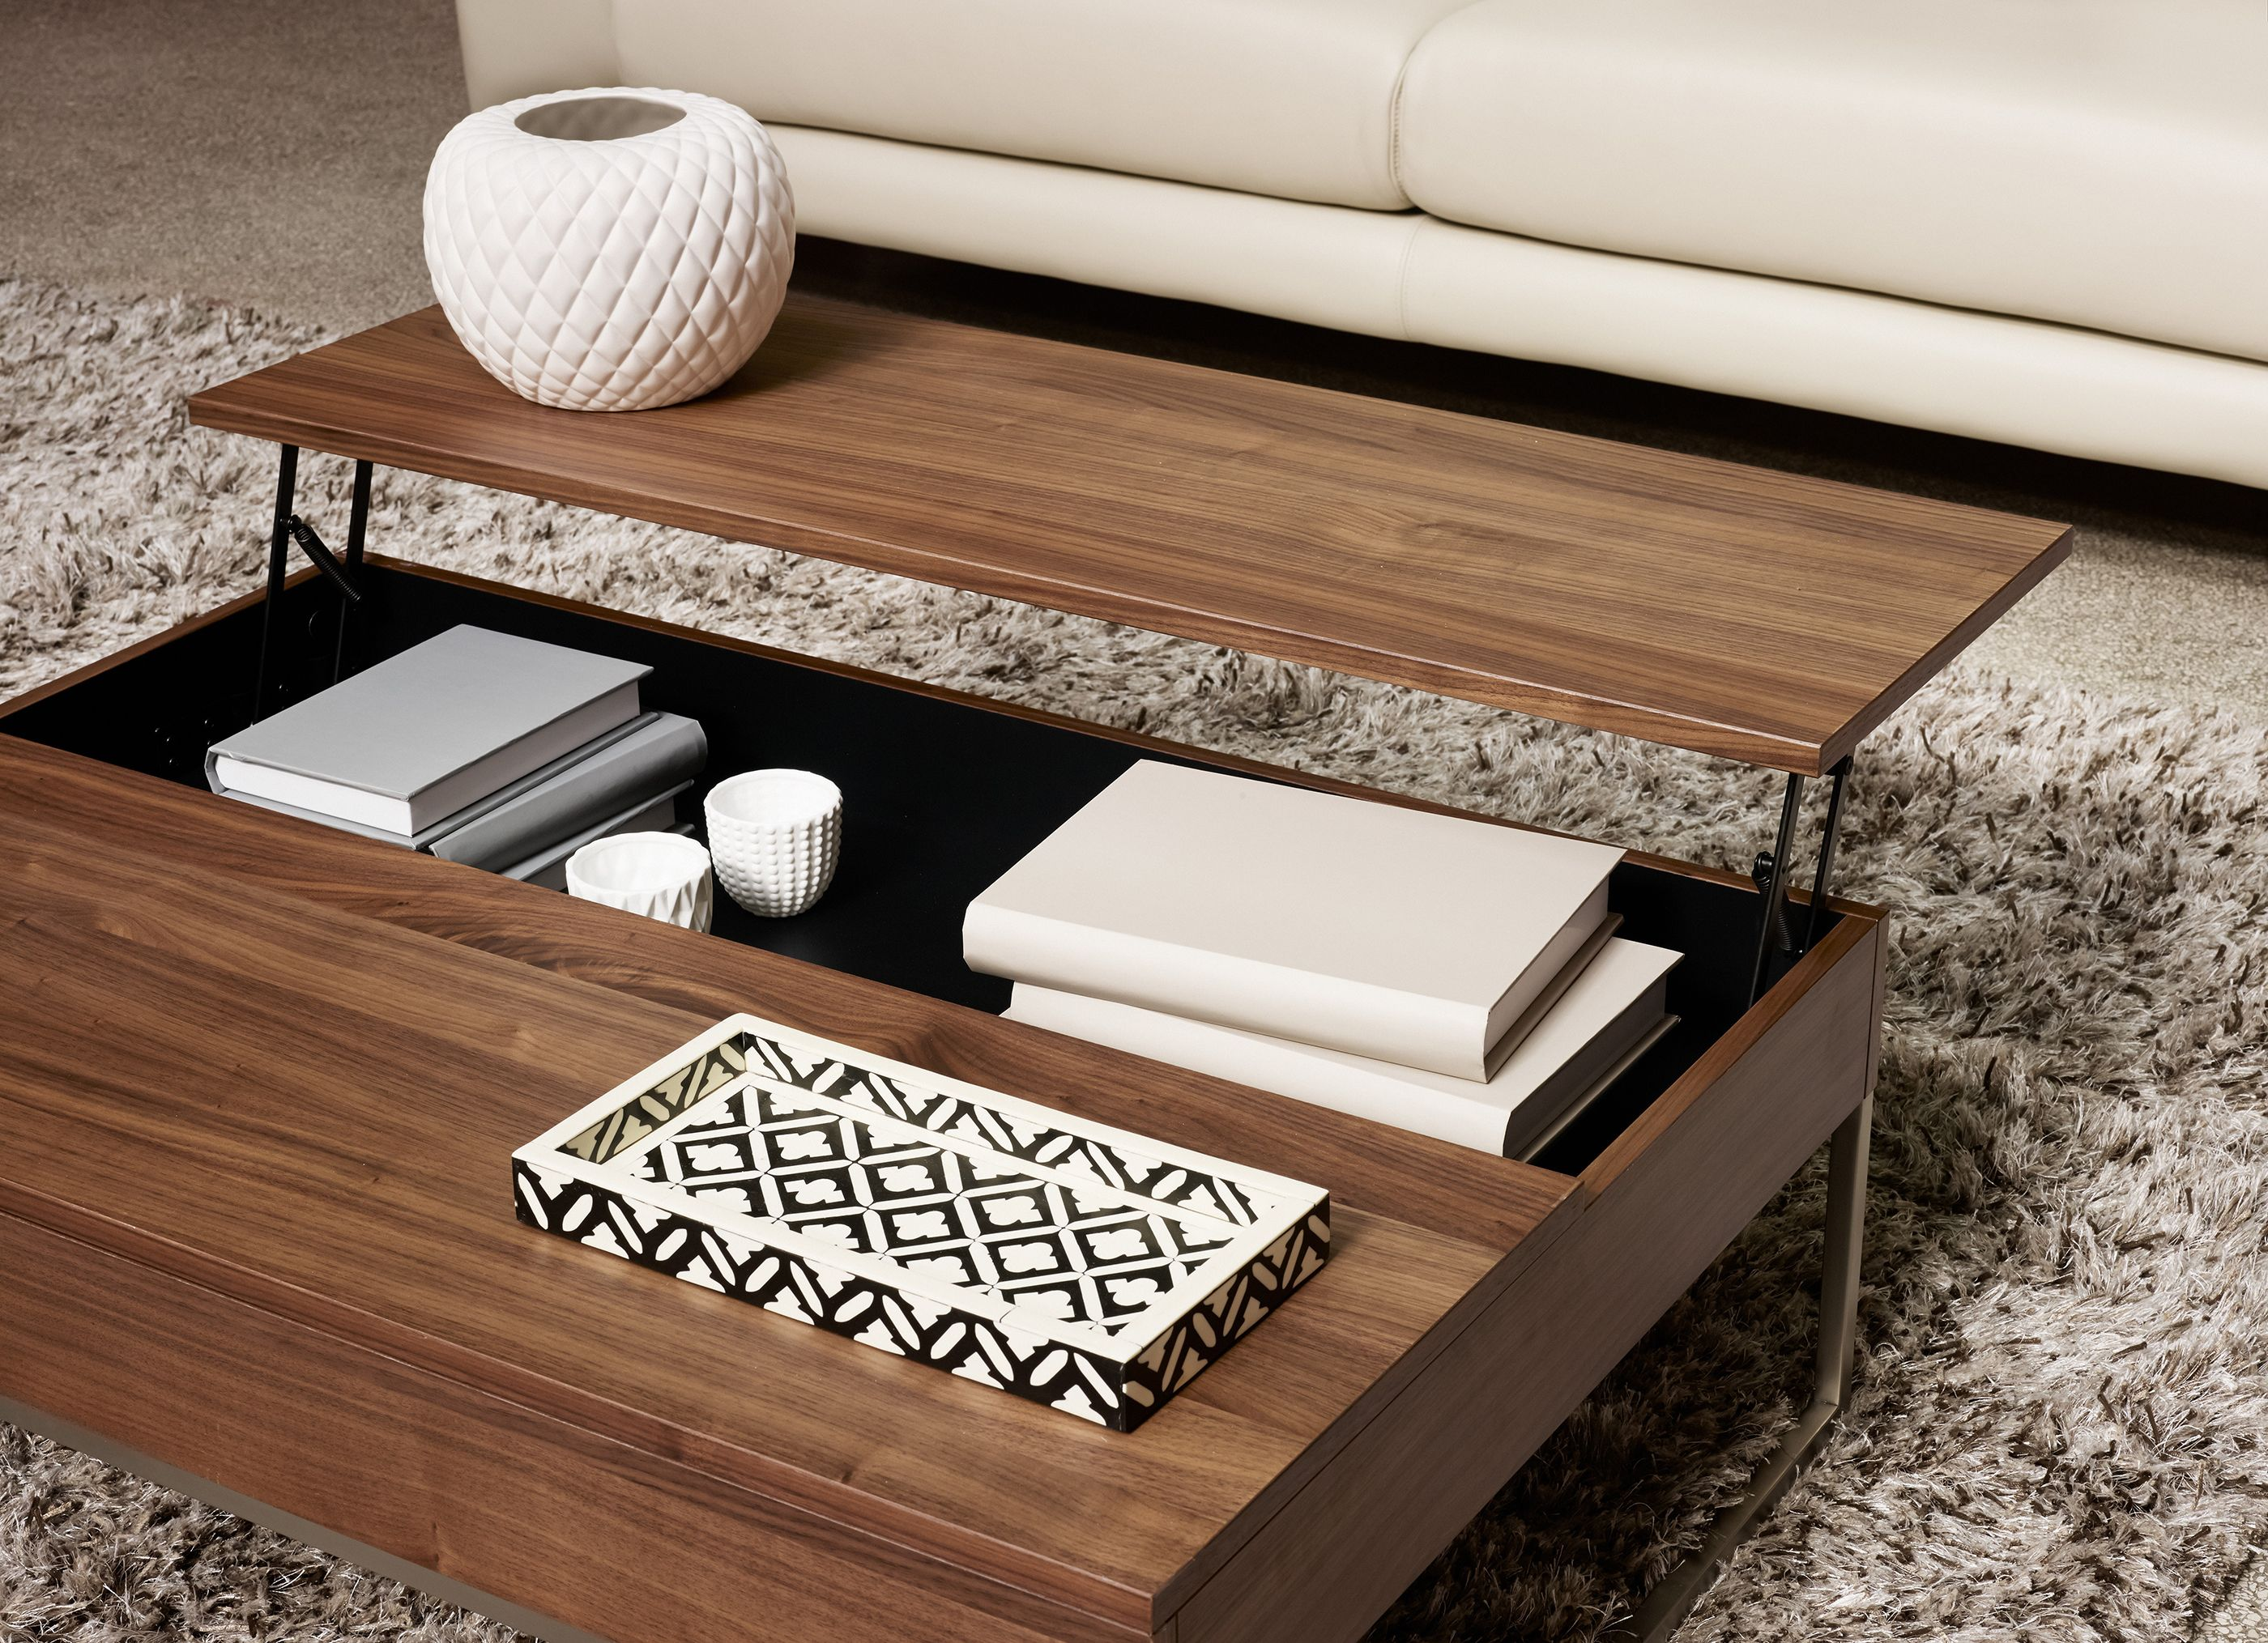 Granville functional coffee table with storage available in granville functional coffee table with storage available in different colors as shown walnut geotapseo Choice Image